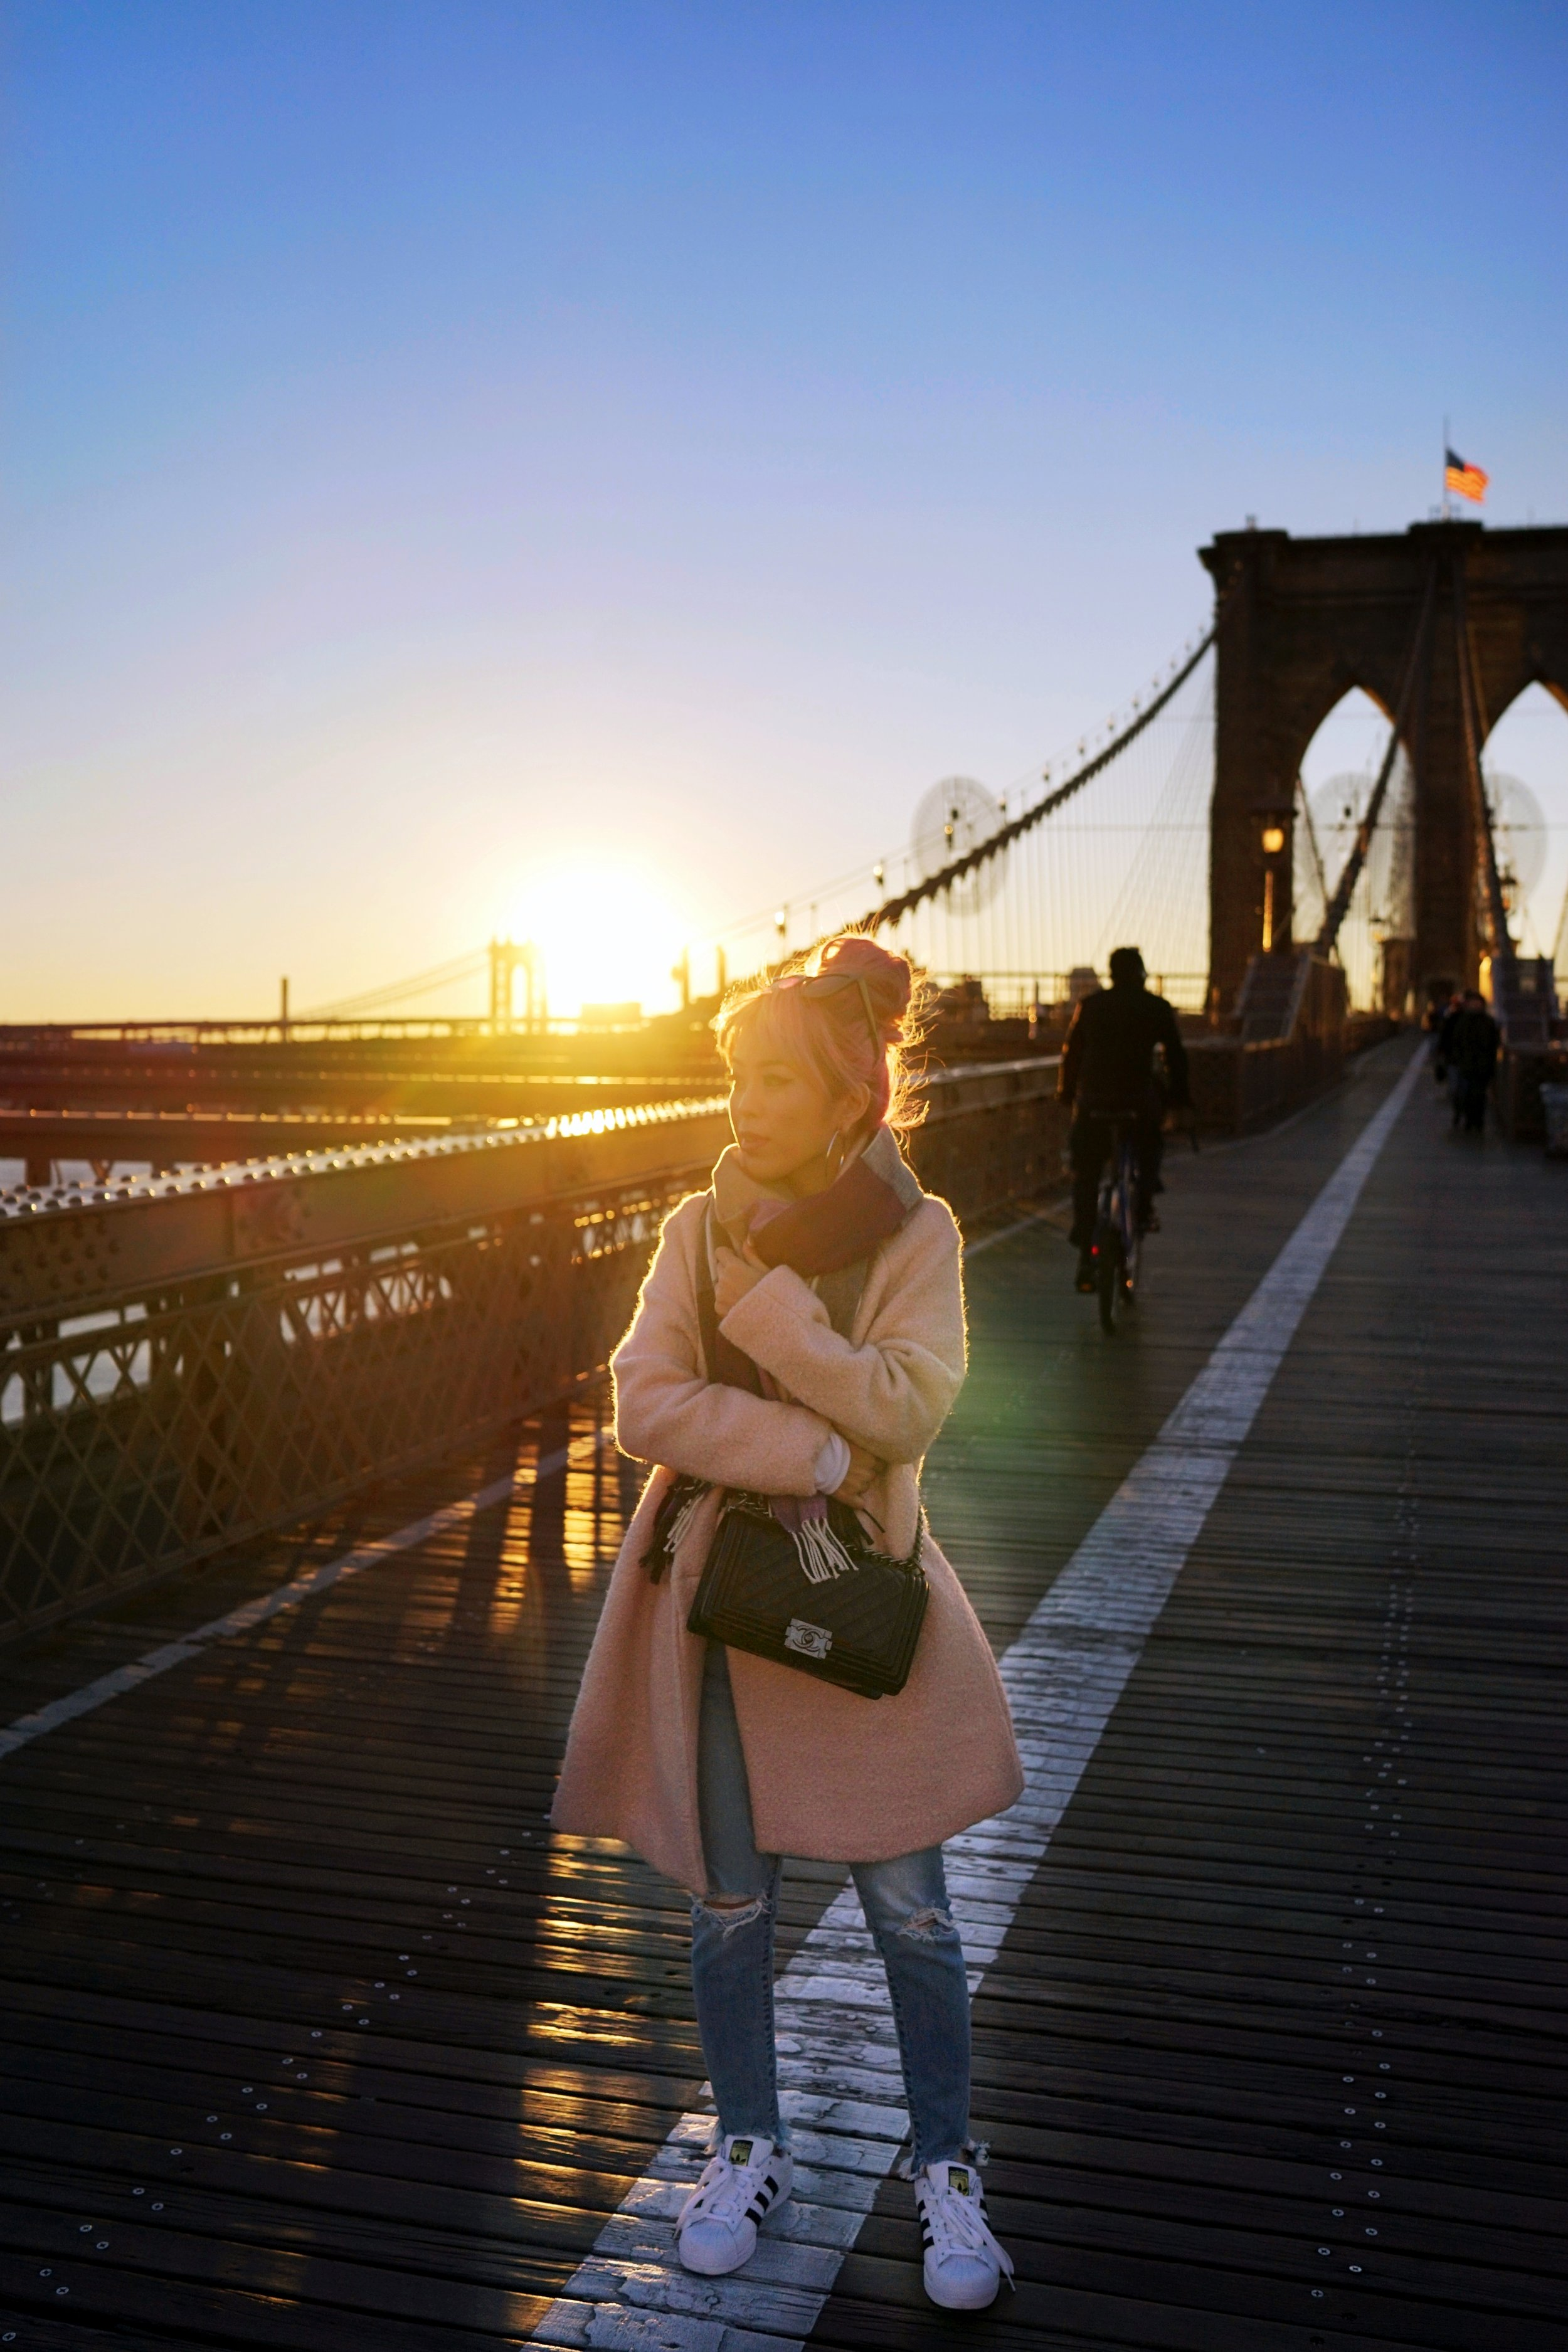 GAP Scarf-Zara pink coat-MOUSSY- frayed hem jeans- CHANEL Lambskin Quilted Medium Boy Flap Black-Adidas Superstar Shoes-Urban Outfitters Sunglasses-Aika's Love Closet-Sealtle fashion style blogger from japan-pink hair-brooklyn bridge-new york-city 18